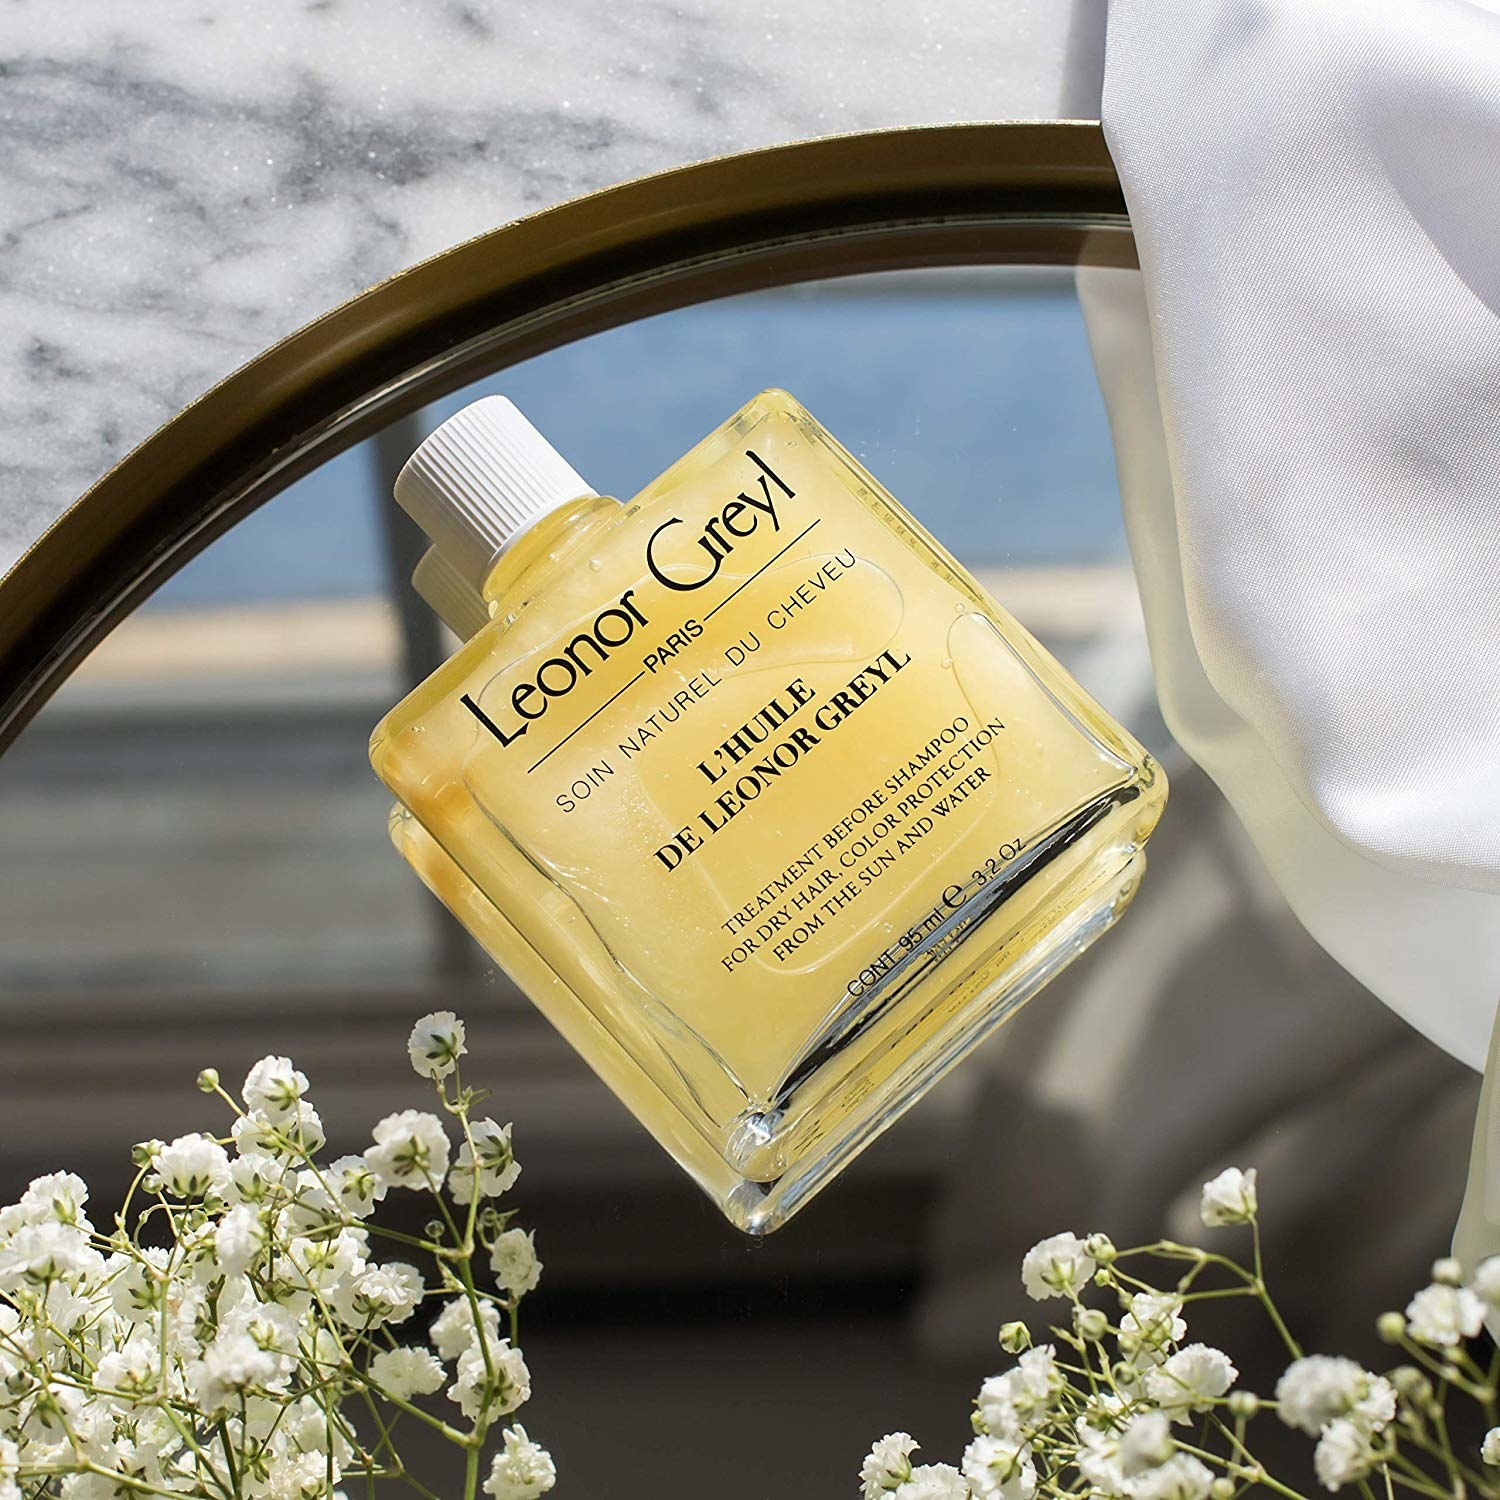 A bottle of Huile de Palme Beautifying Oil laying on a tray